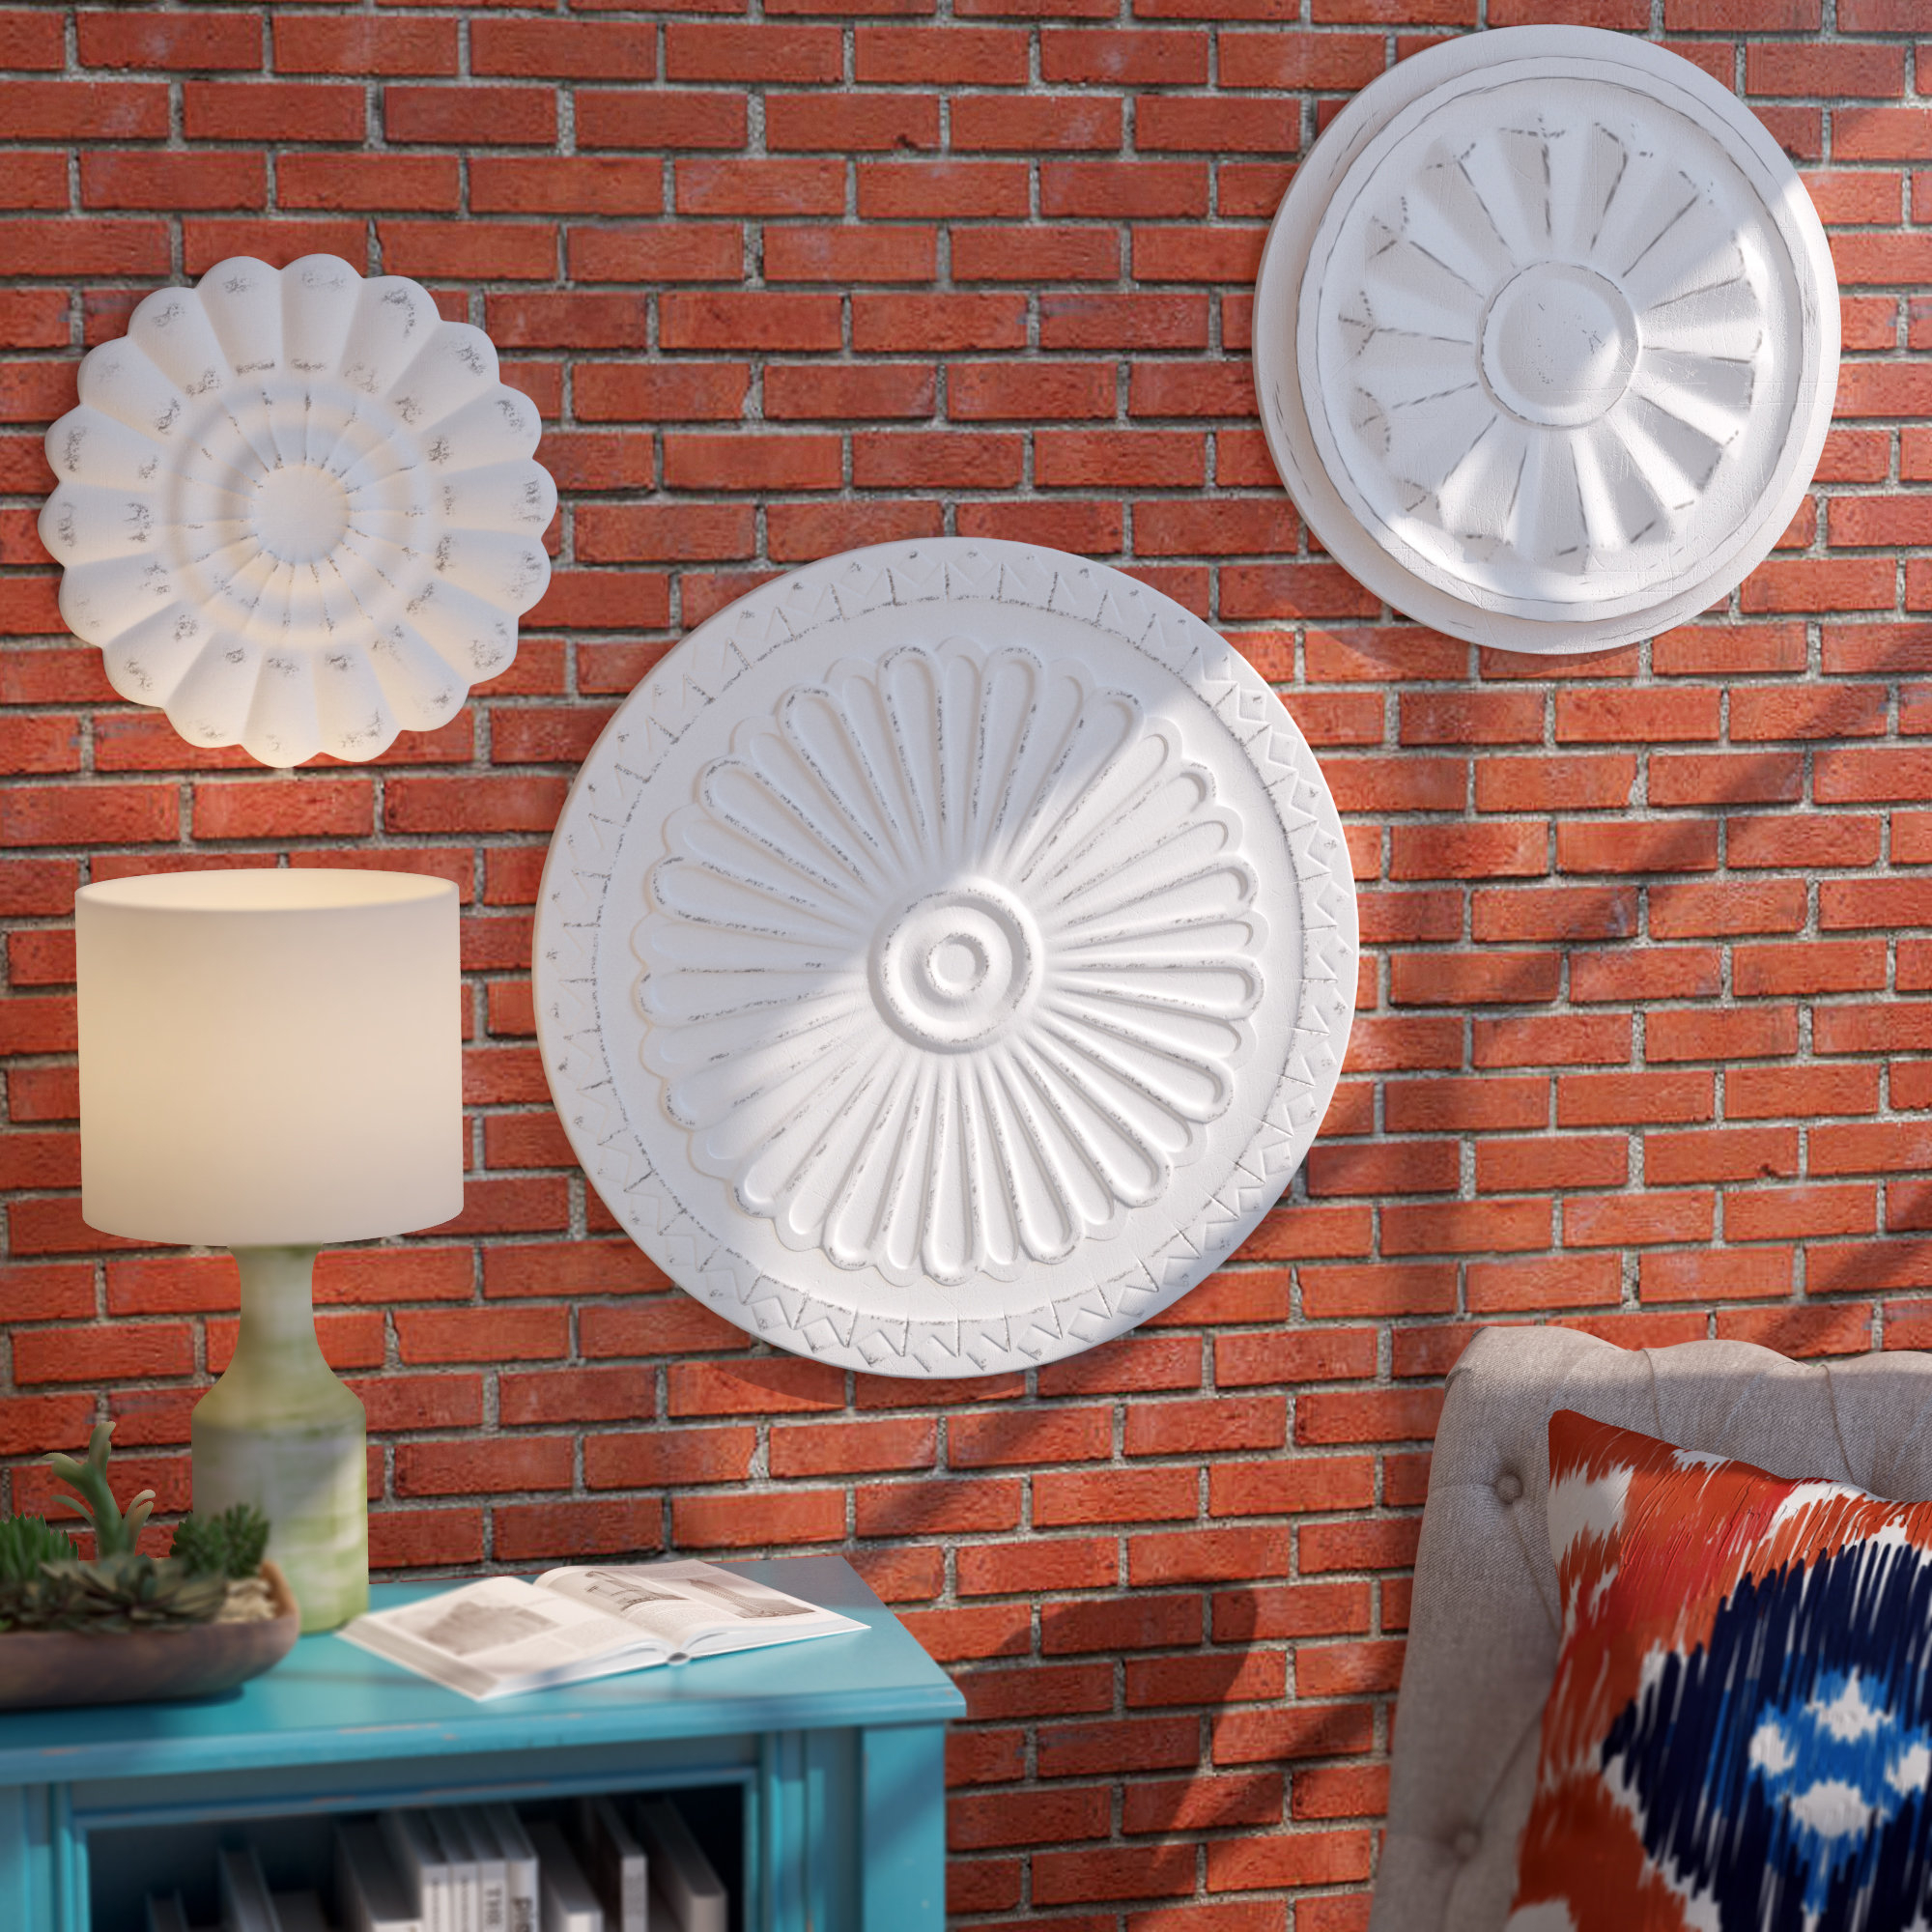 Medallion Wall Decor | Wayfair in European Medallion Wall Decor (Image 15 of 30)